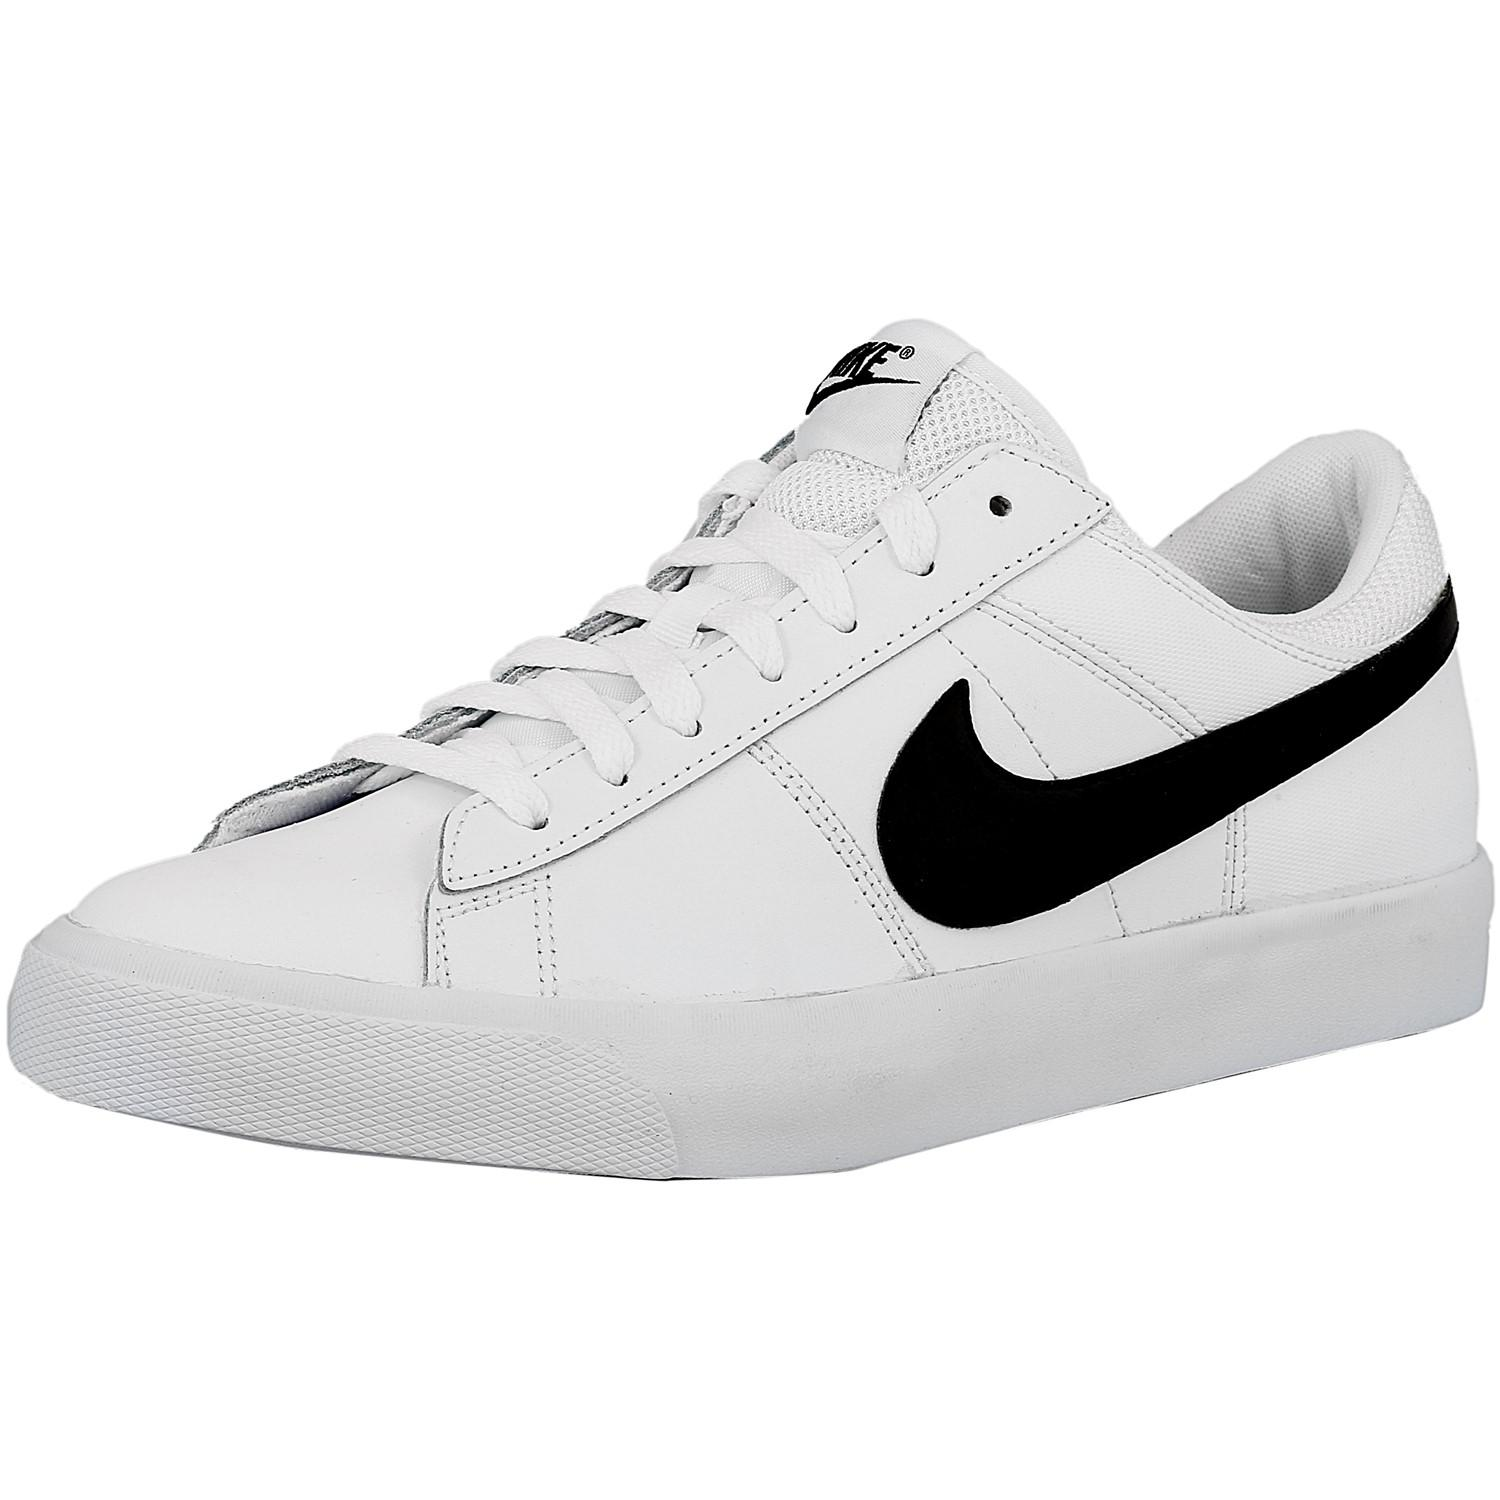 1ba4200d88e nike -White-Black-Black-White-Match-Supreme-White-Black-black-white-Ankle-high-Leather-Tennis- Shoe.jpeg